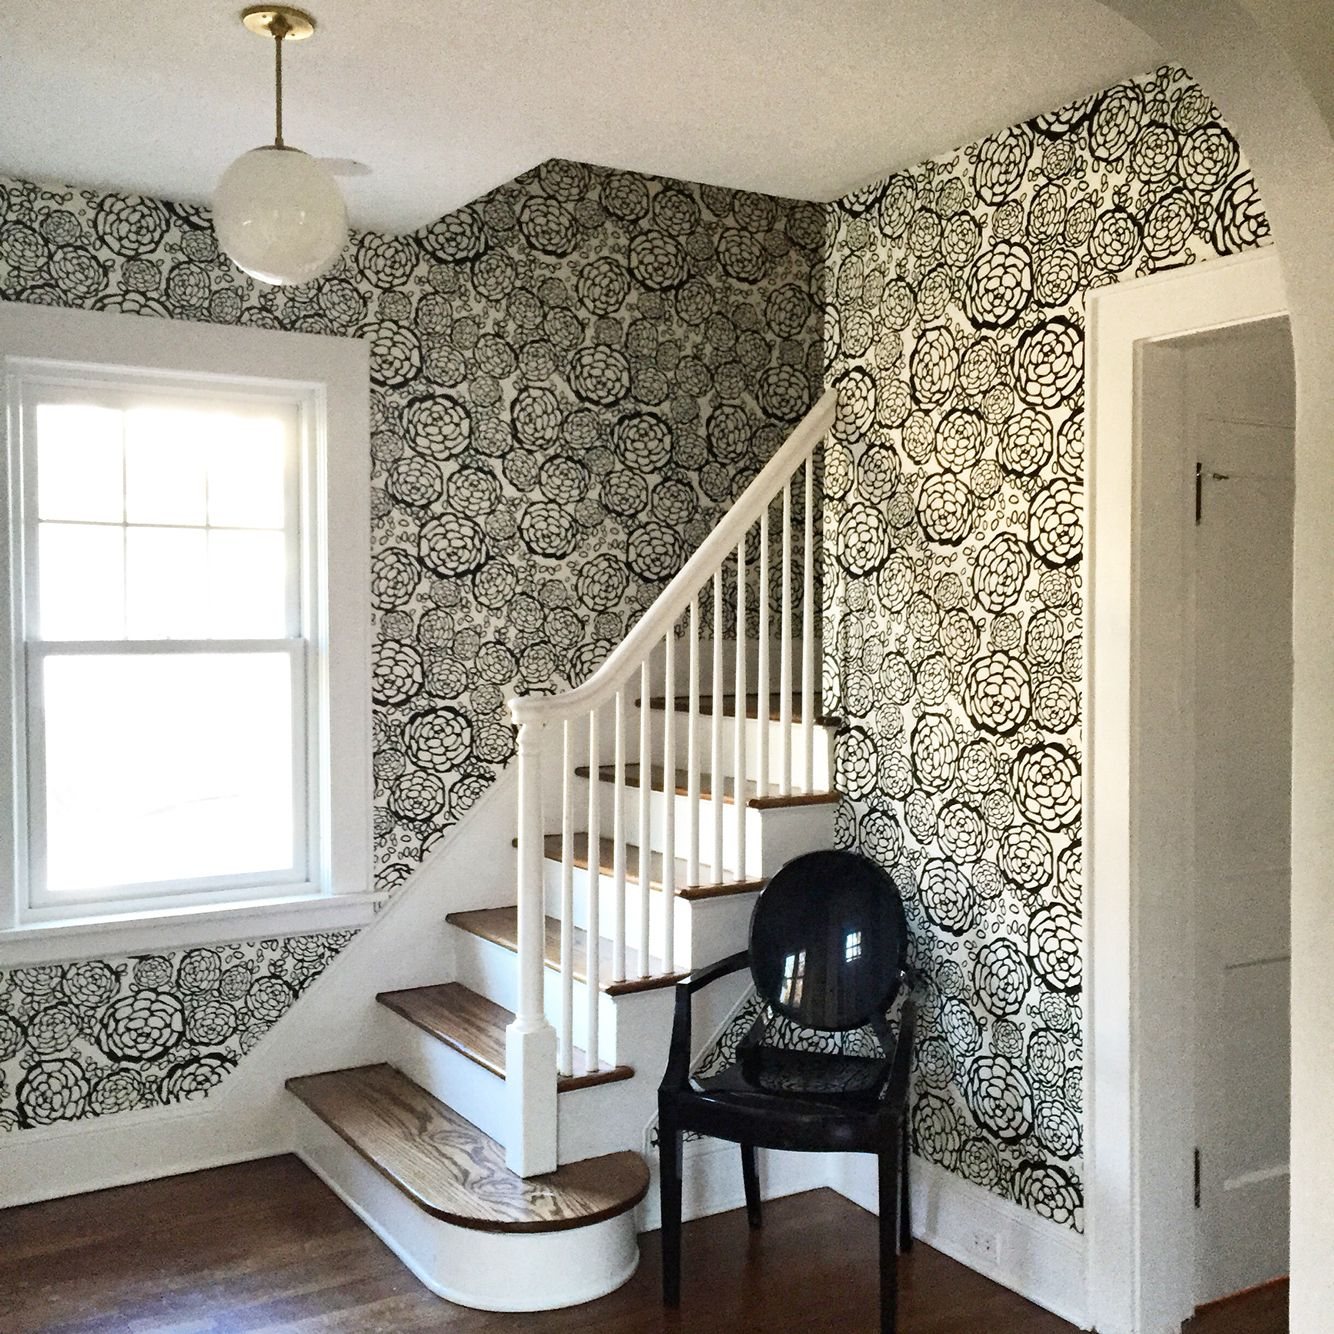 Wallpaper Foyer : Entry foyer of our dutch colonial ohh joy for hygge